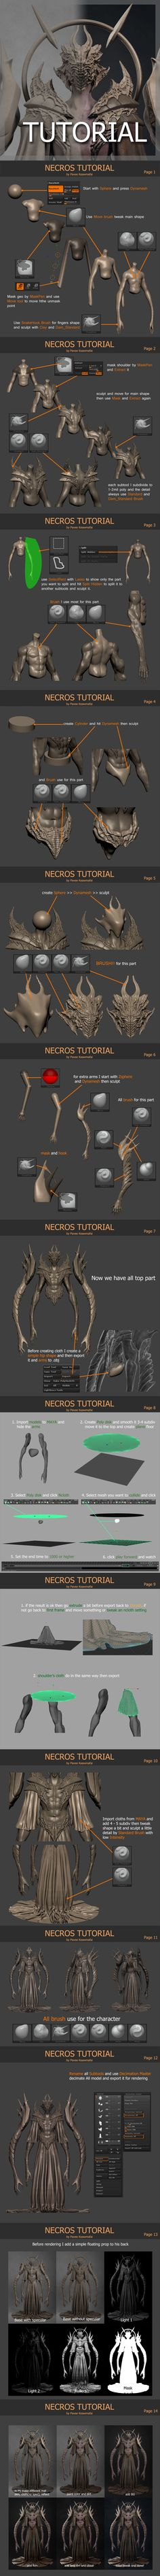 Necros [Tutorial] by Khempavee.deviantart.com on @DeviantArt                                                                                                                                                      Plus